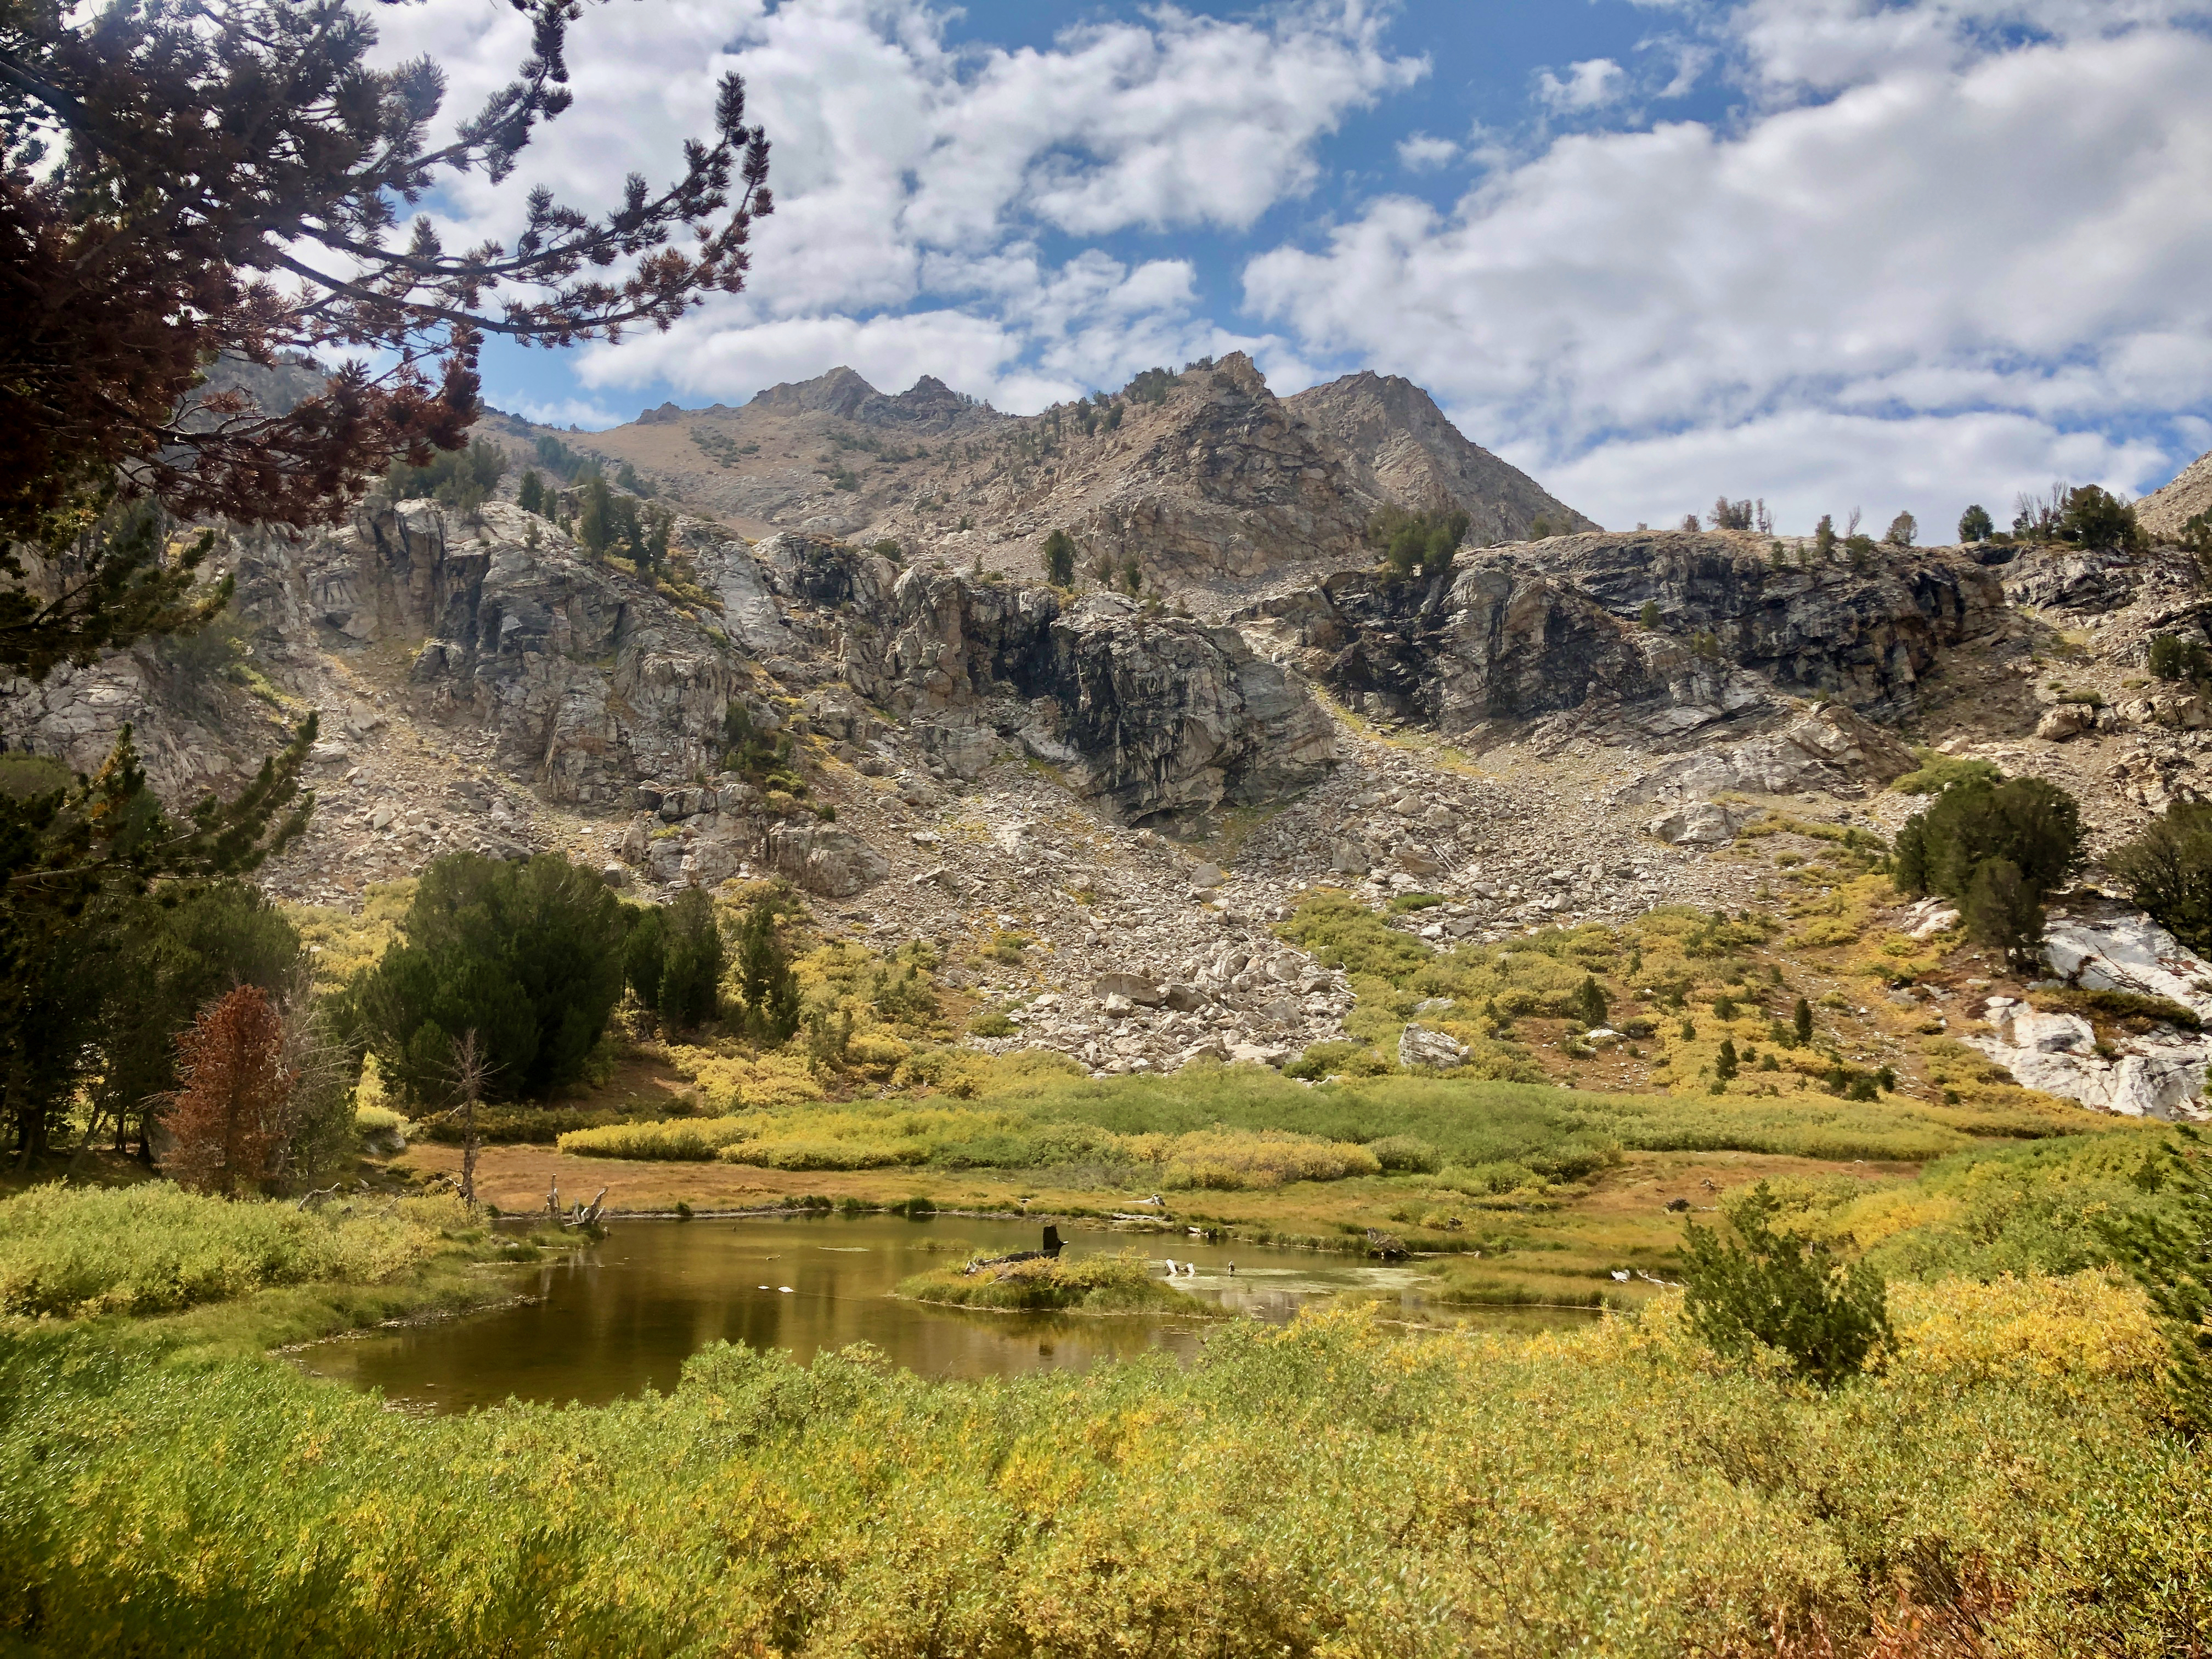 One of several lakes on the journey above the north trailhead